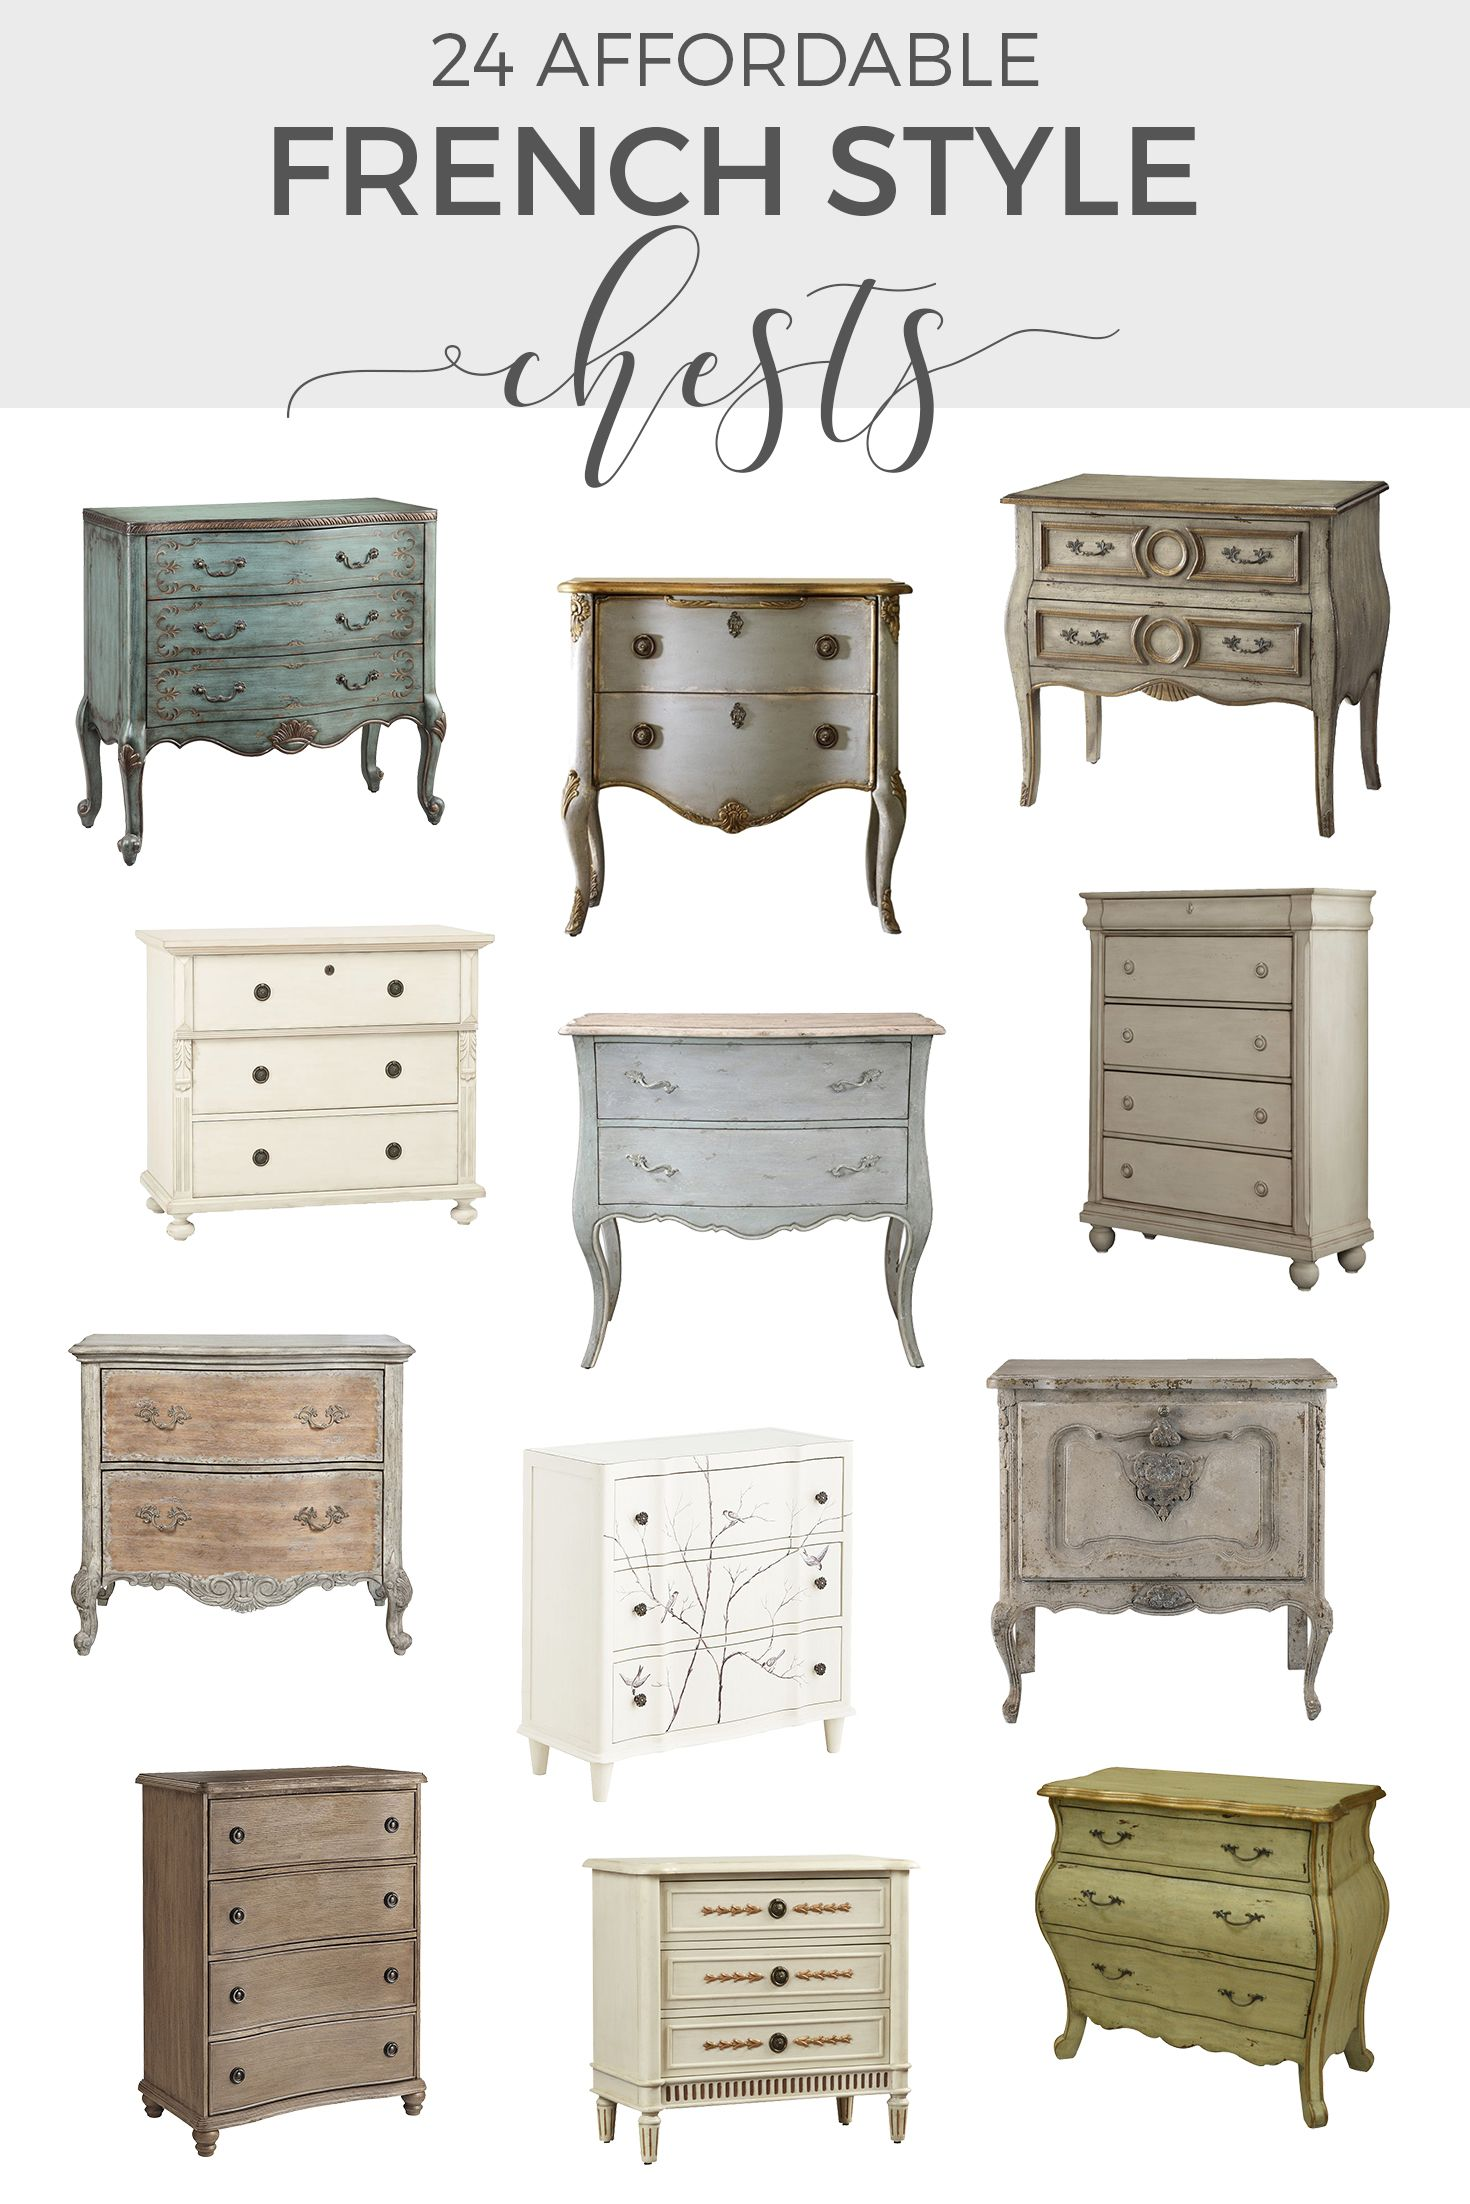 The French Dresser 24 Affordable